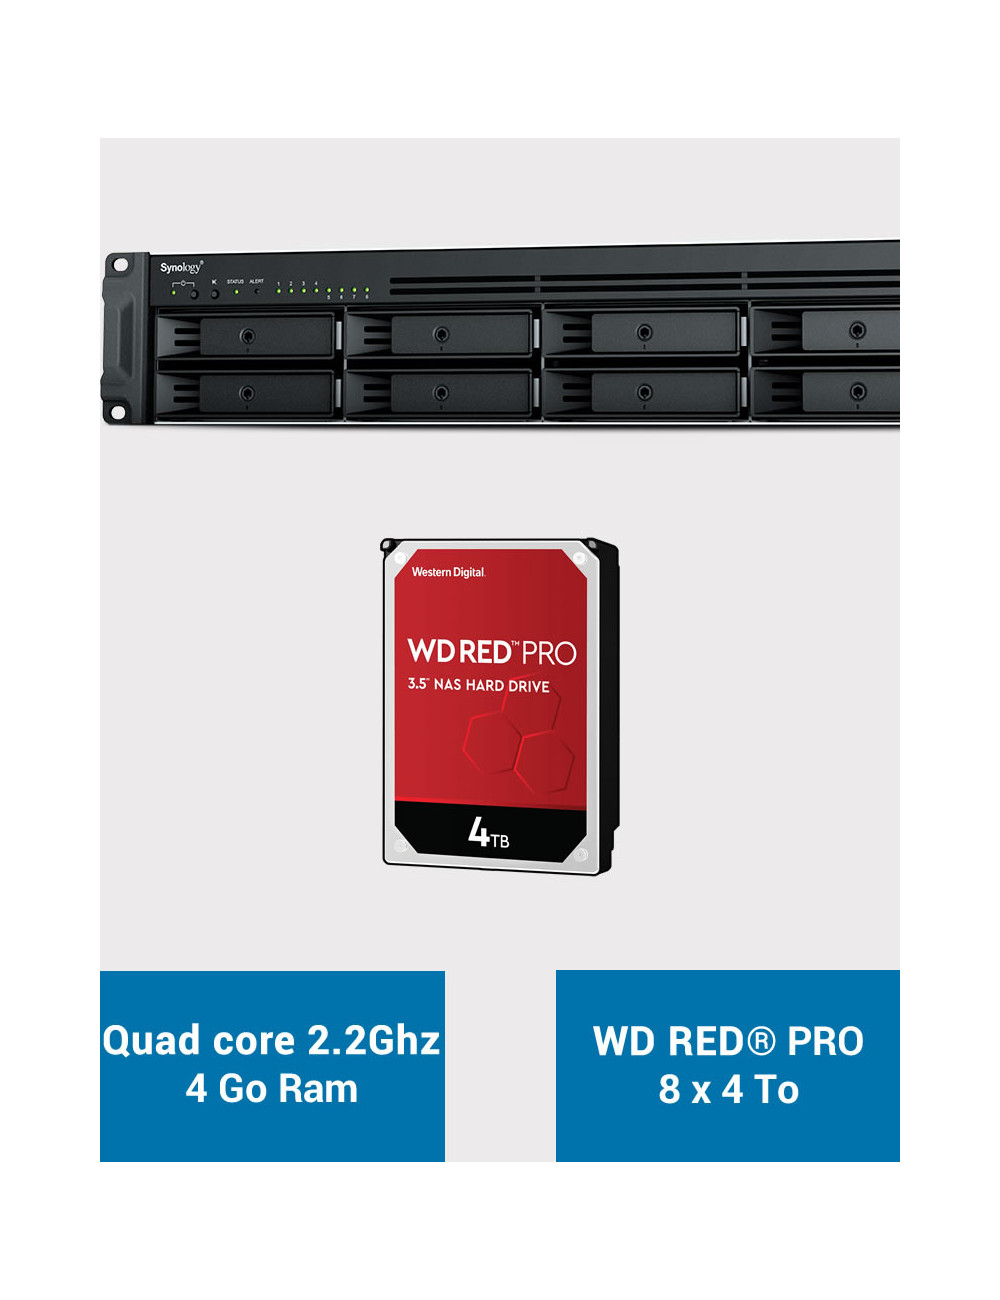 Synology RS1221+ Serveur NAS Rack WD RED PRO 32To (8x4To)